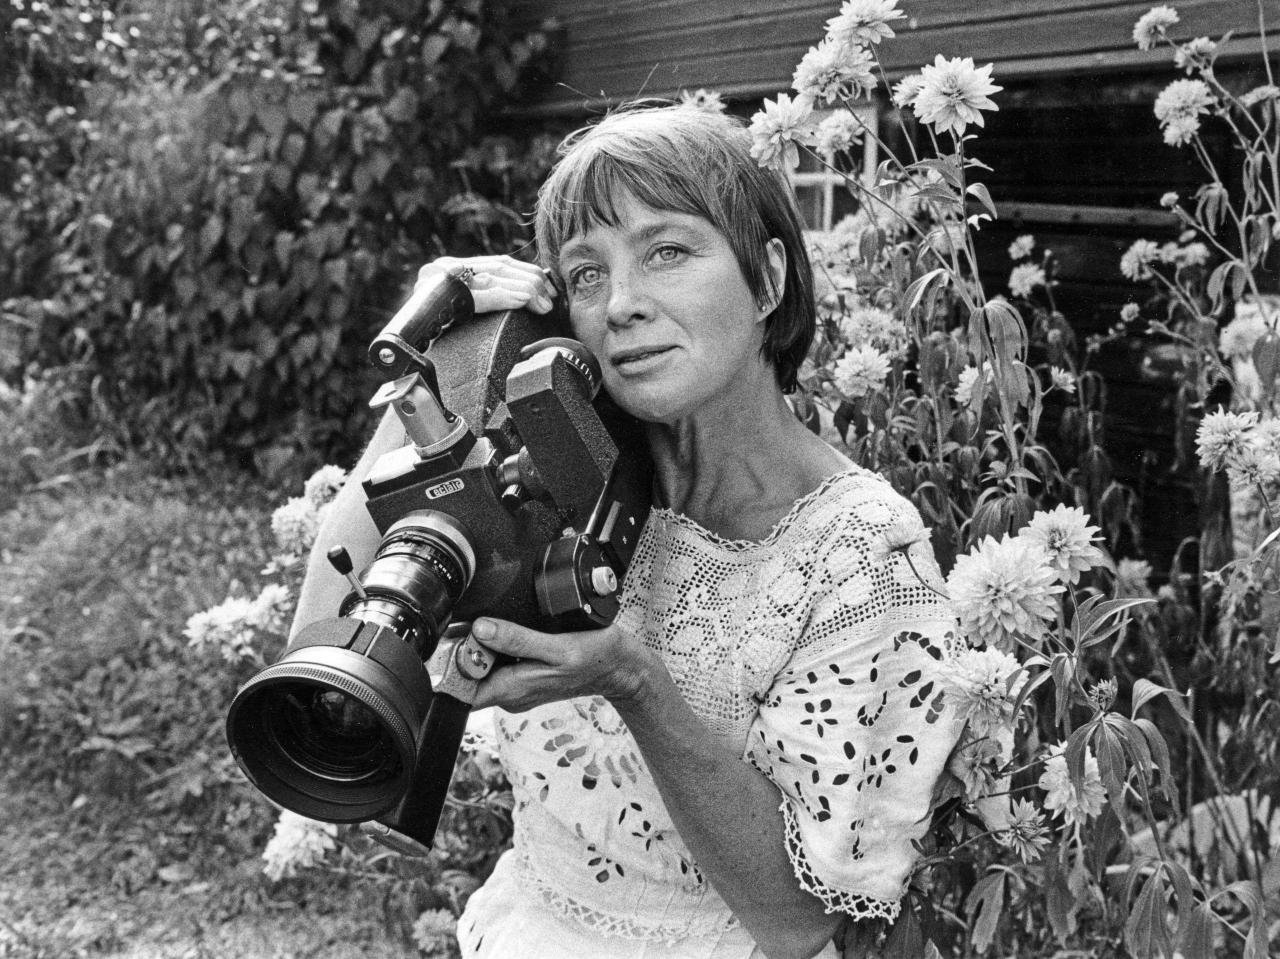 Mai Zetterling in later years posing with a camera in her garden